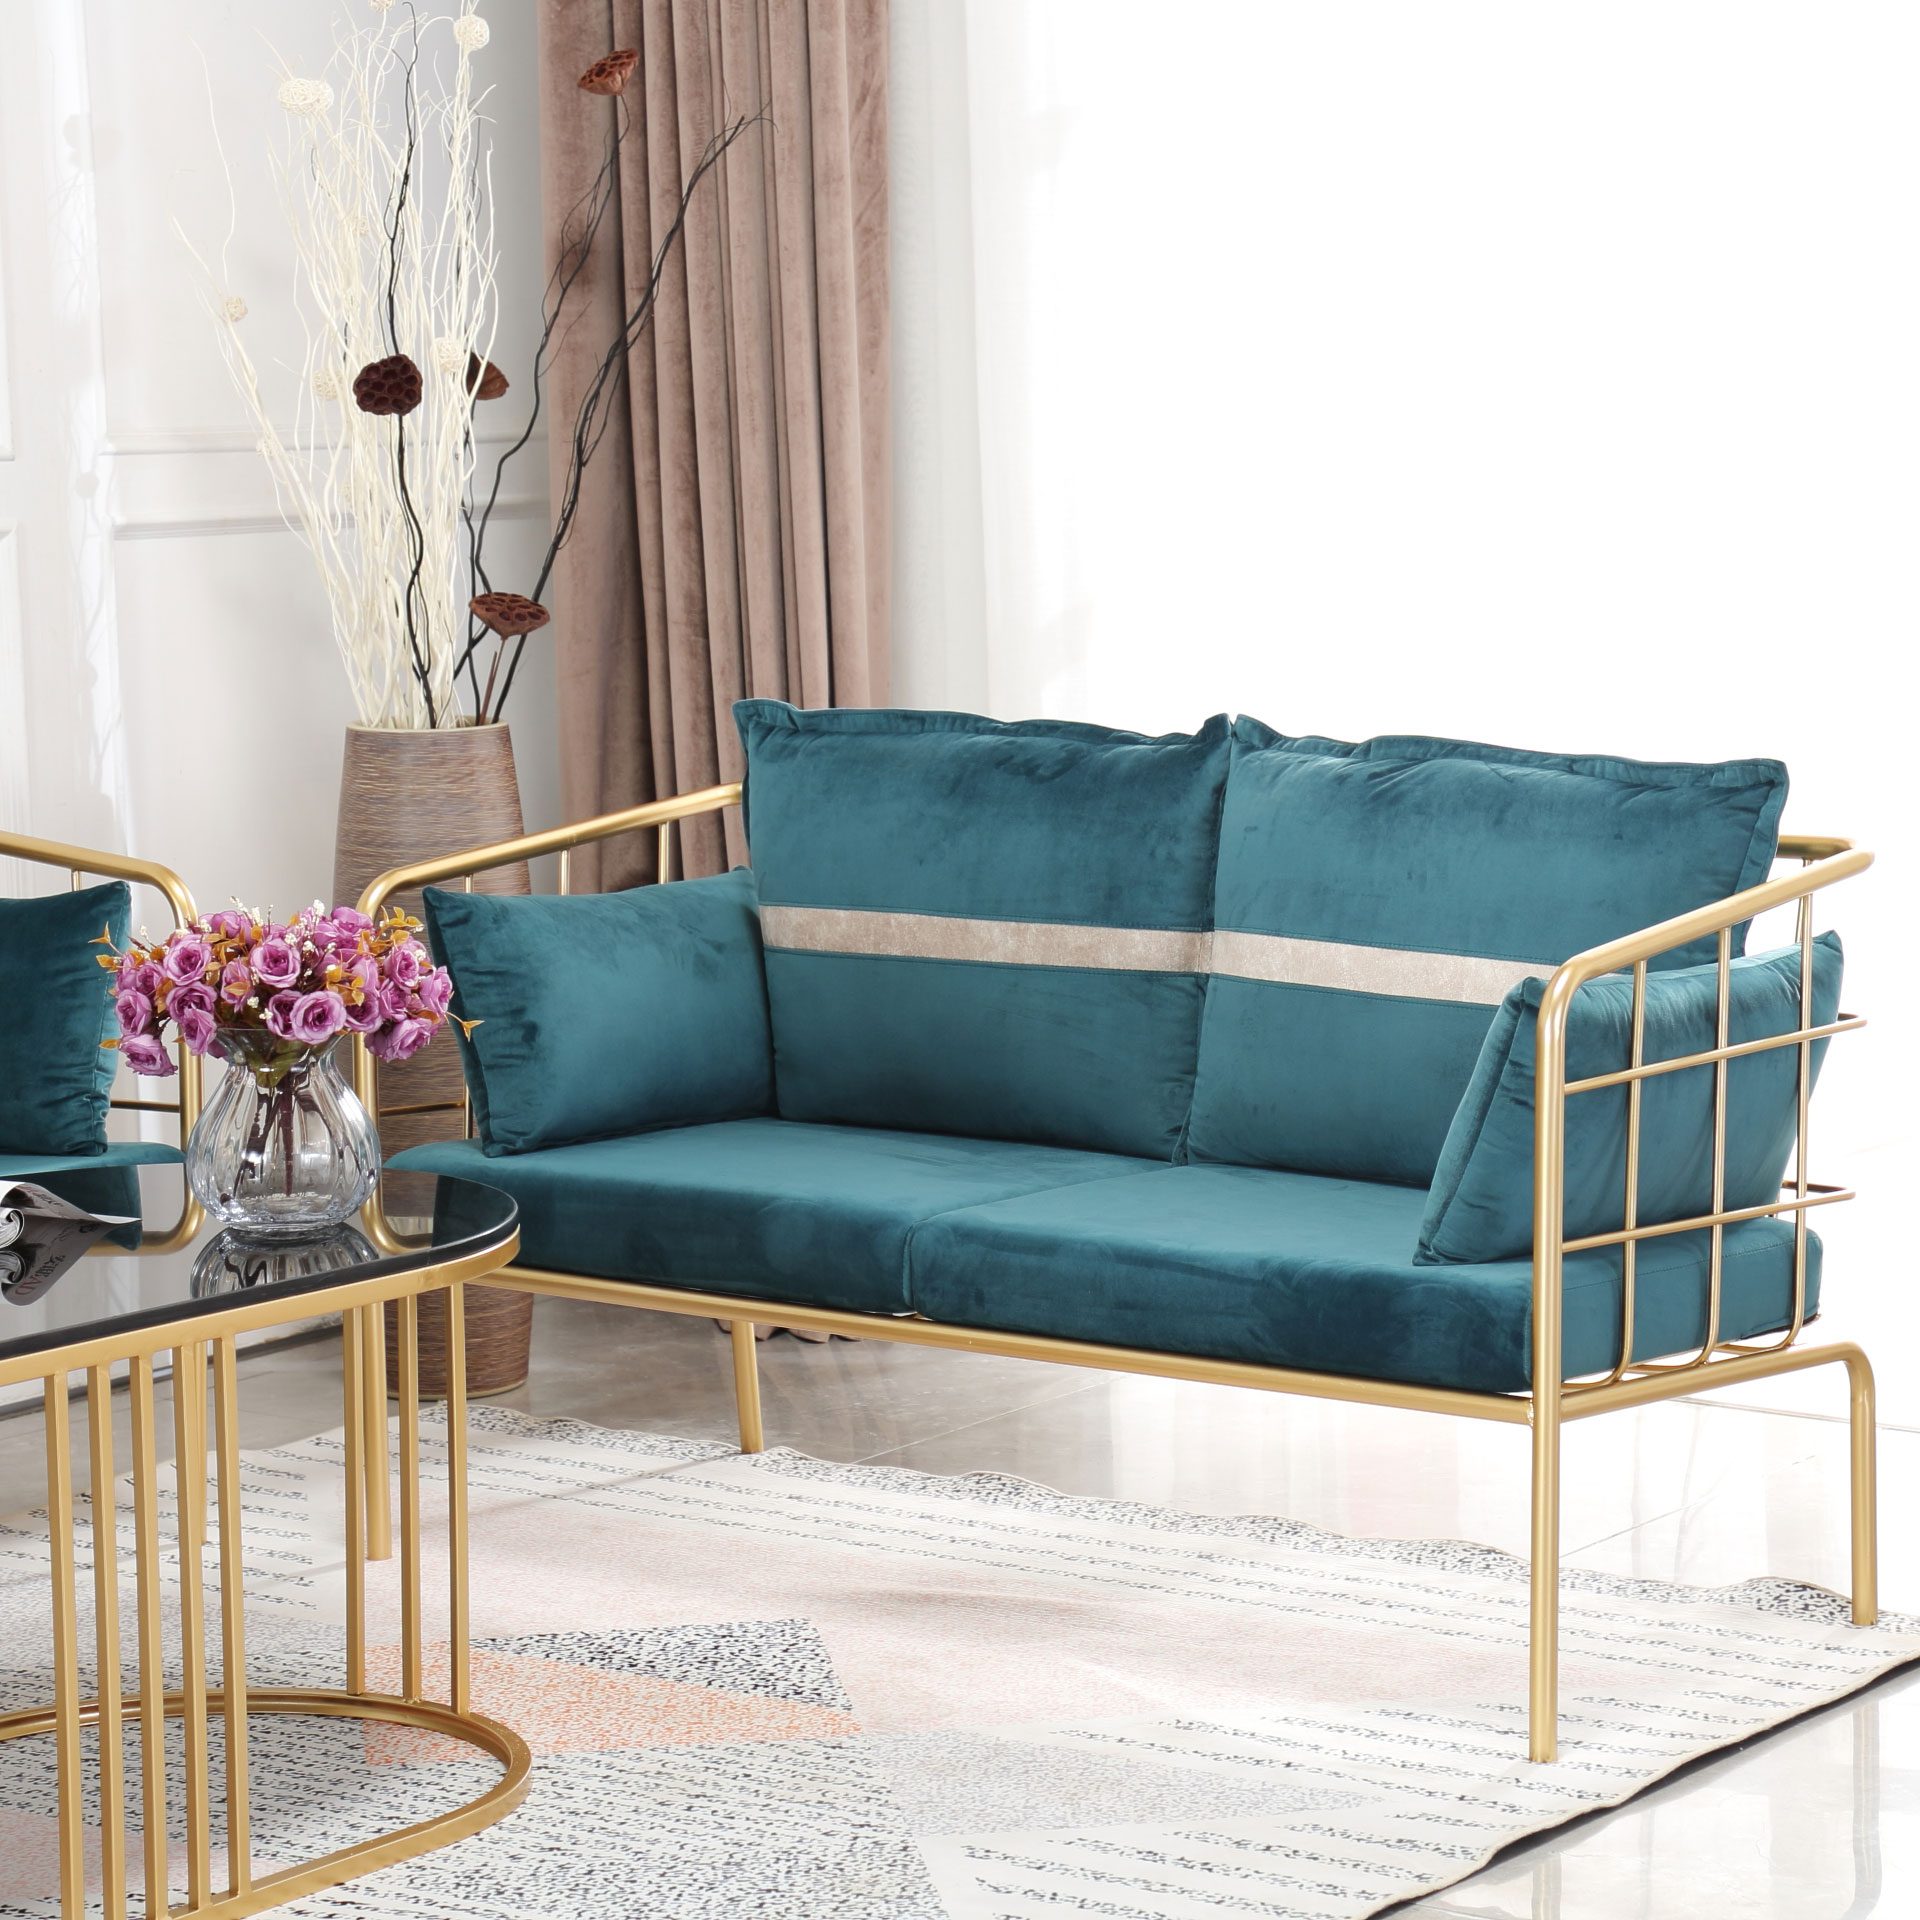 Louis fashion living room chairs nordic minimalist postmodern furniture sofa in living room chairs from furniture on aliexpress com alibaba group